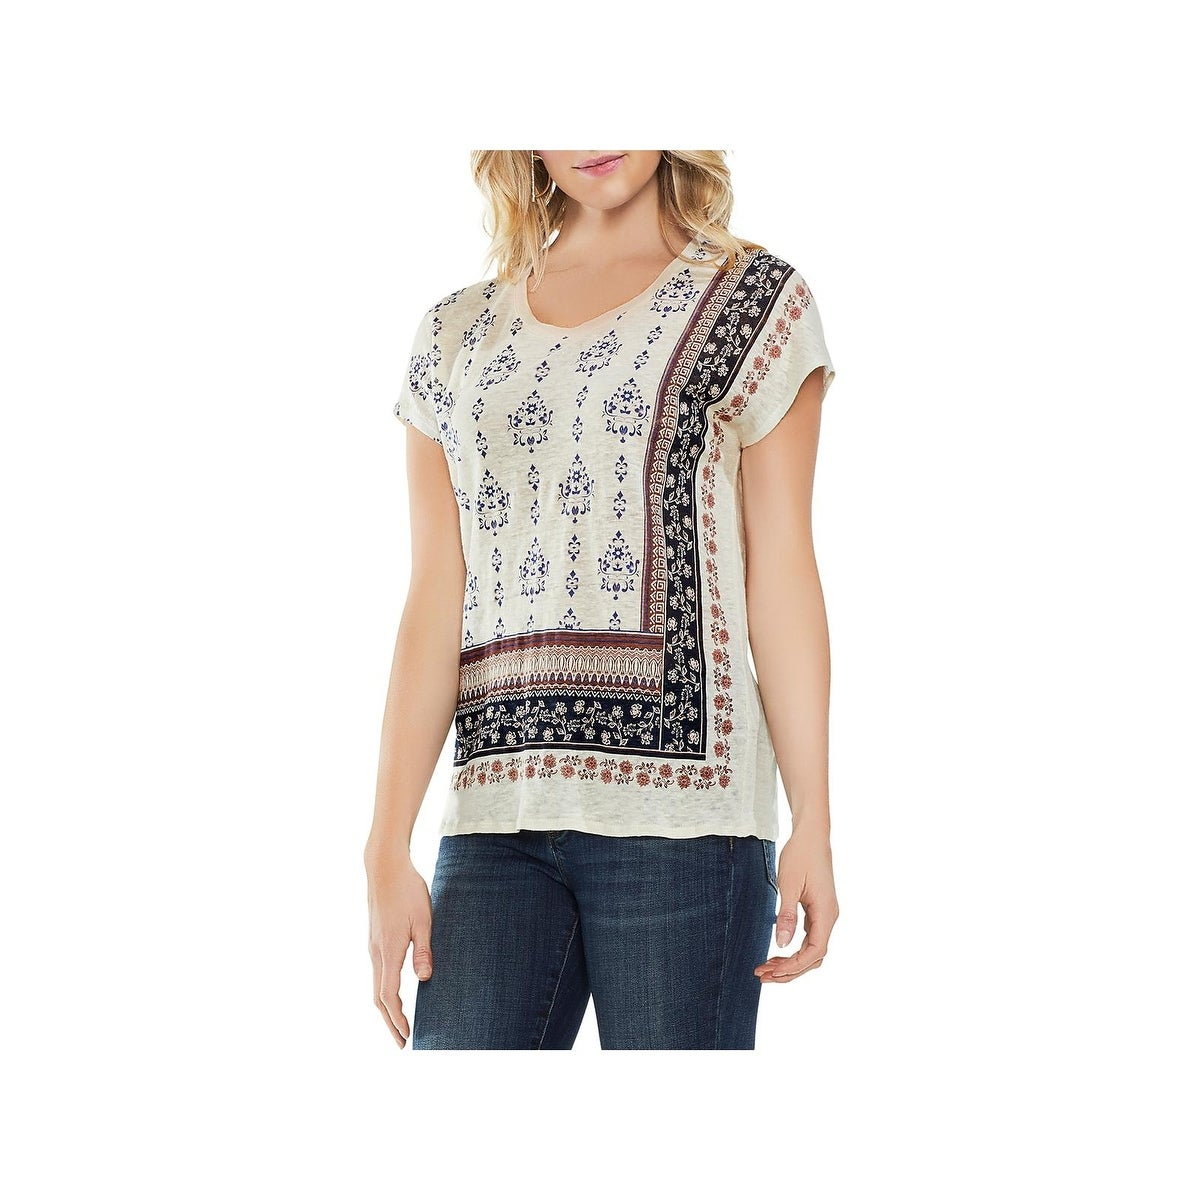 724f3df08709 Vince Camuto Tops | Find Great Women's Clothing Deals Shopping at Overstock